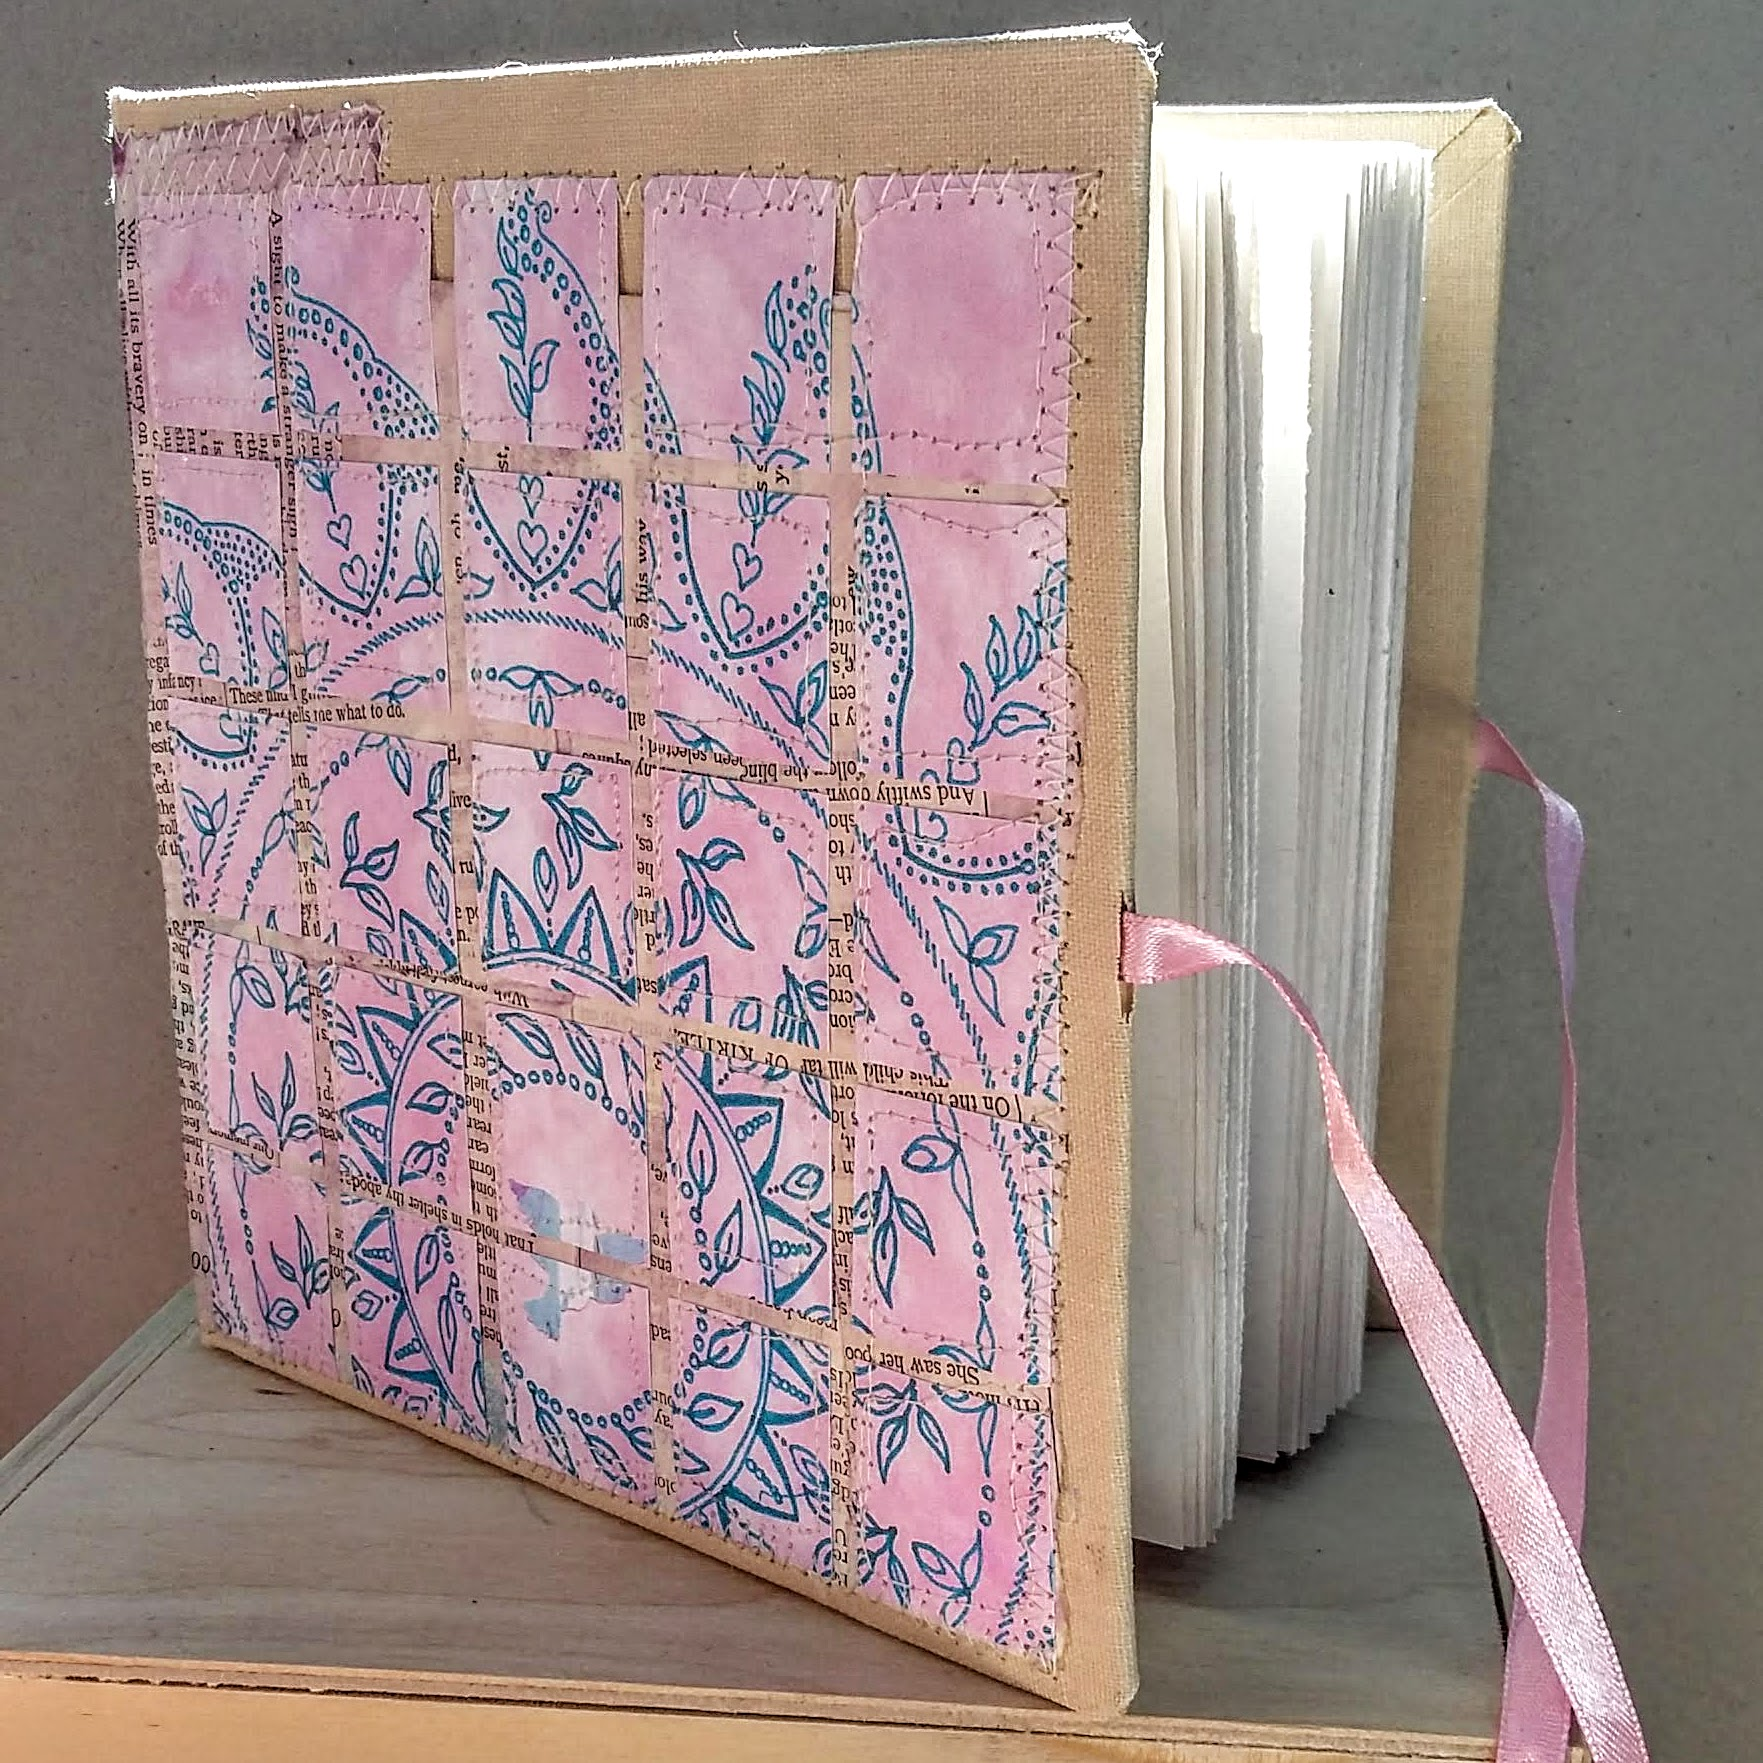 SOLD. Squared mandala book. 15.5 x 15 cm. 140 sides, 70 pages.